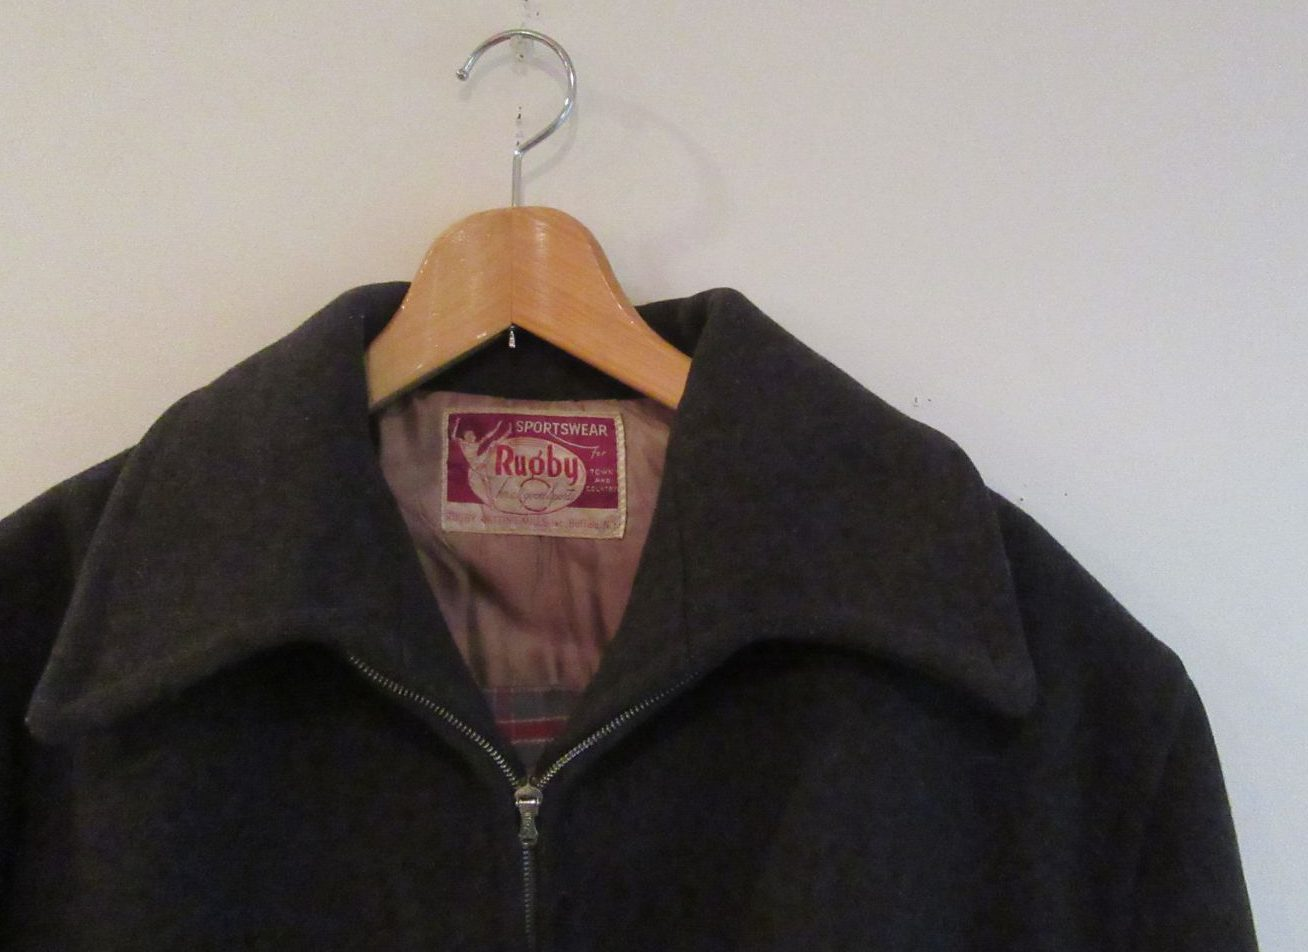 Rugby Knitting Mills ヴィンテージ メルトンハーフコート Vintage Used Clothing Roger S